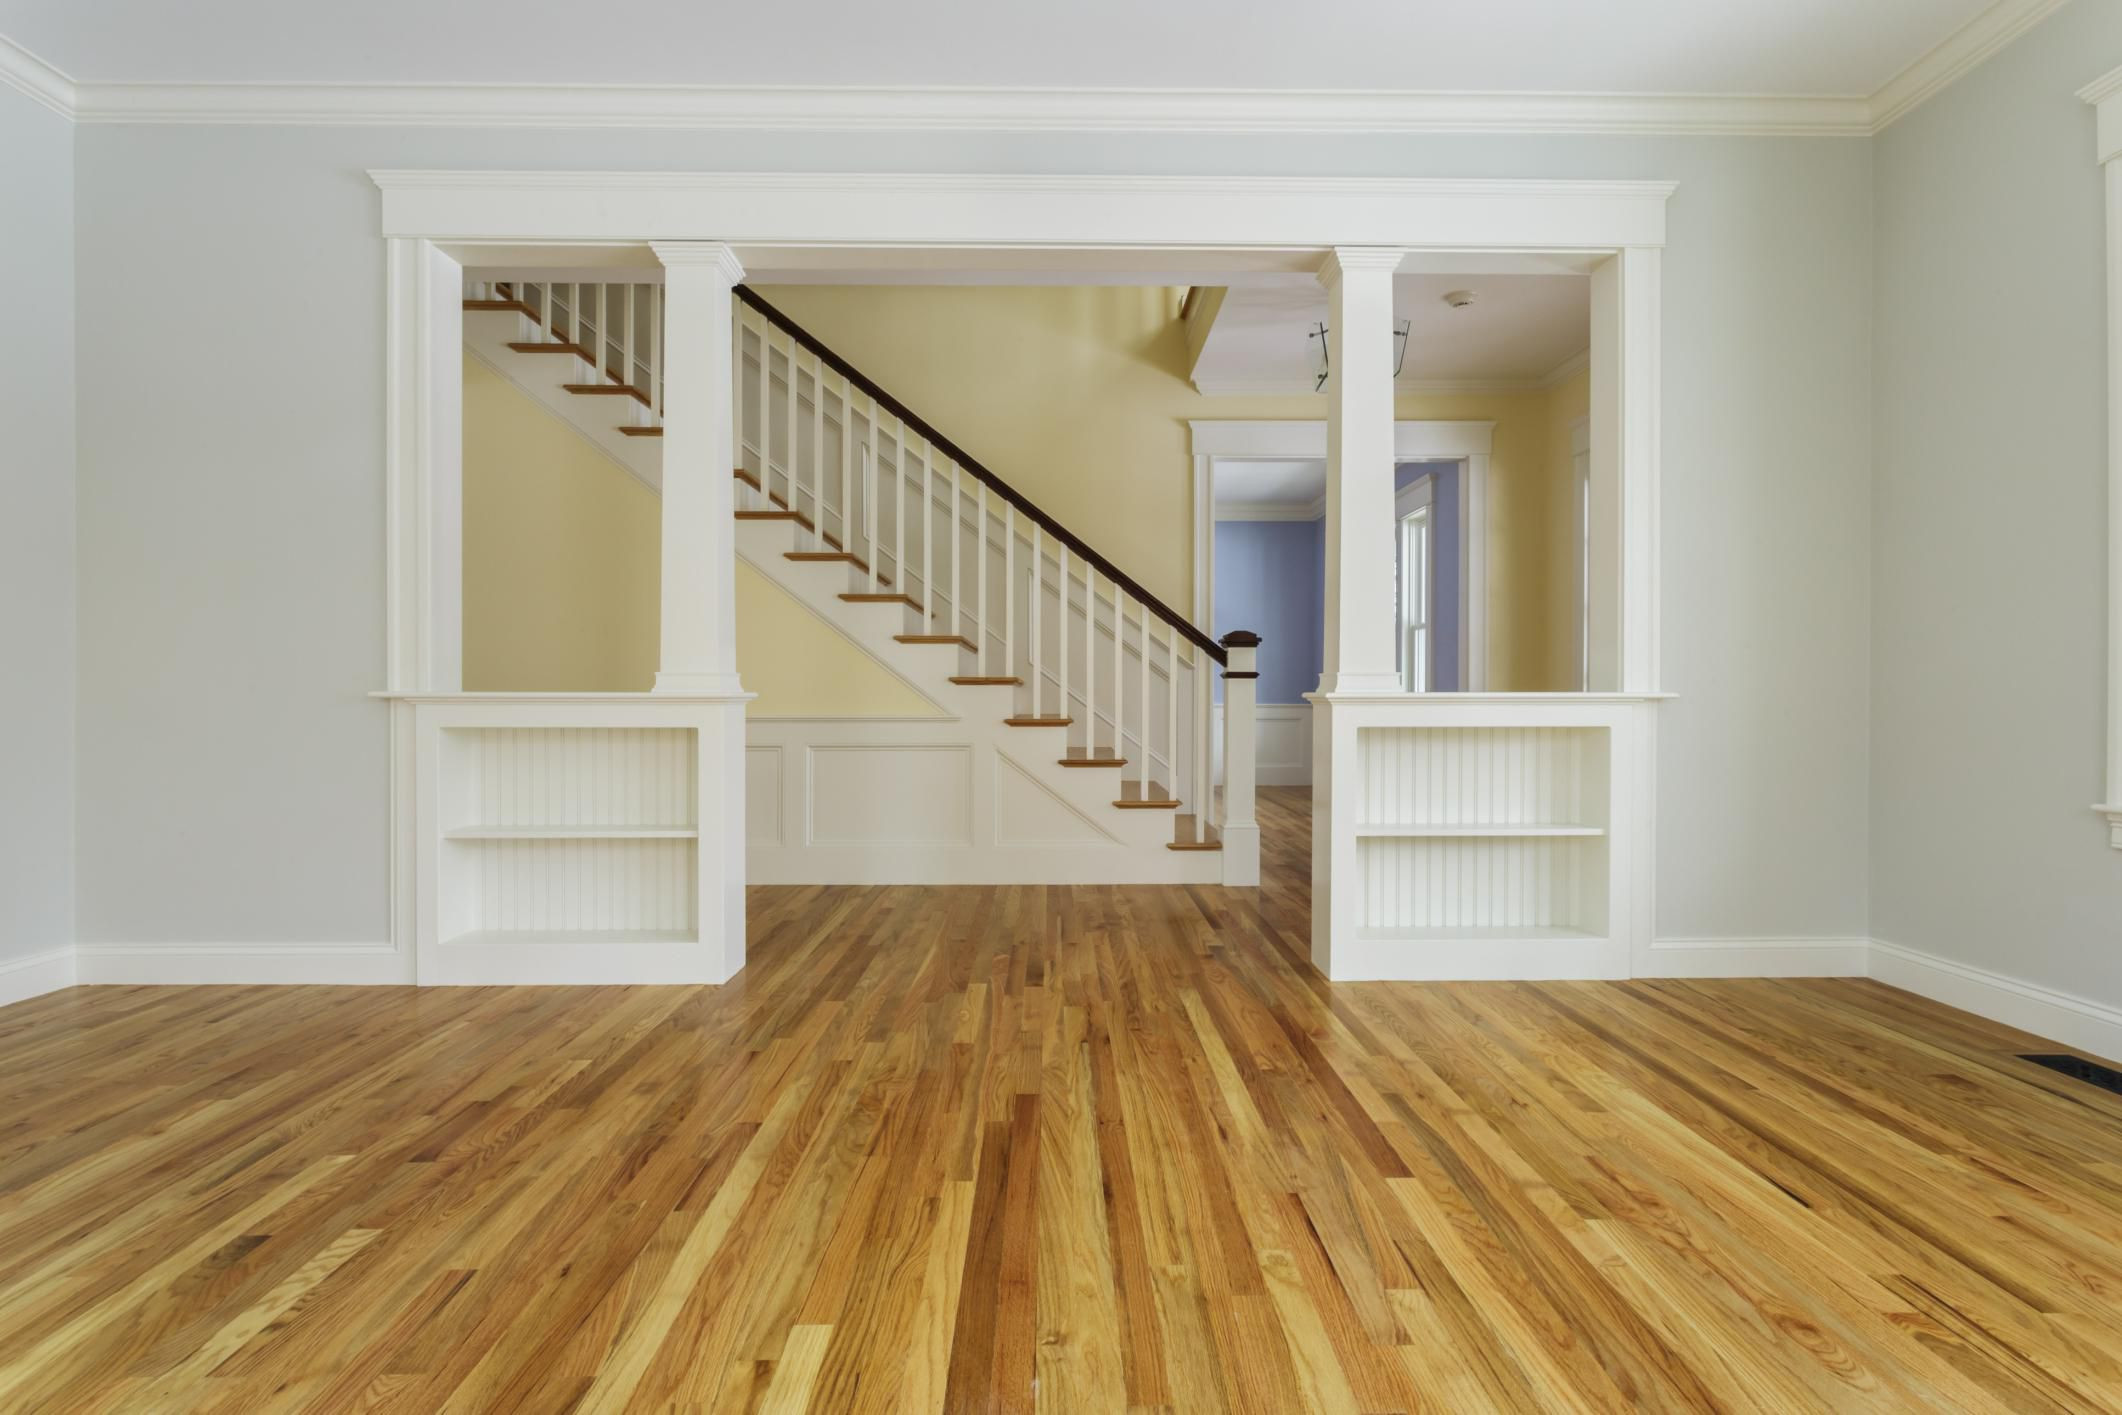 How Much Does It Cost to Install Hardwood Floors Yourself Of Guide to solid Hardwood Floors within 168686571 56a49f213df78cf772834e24